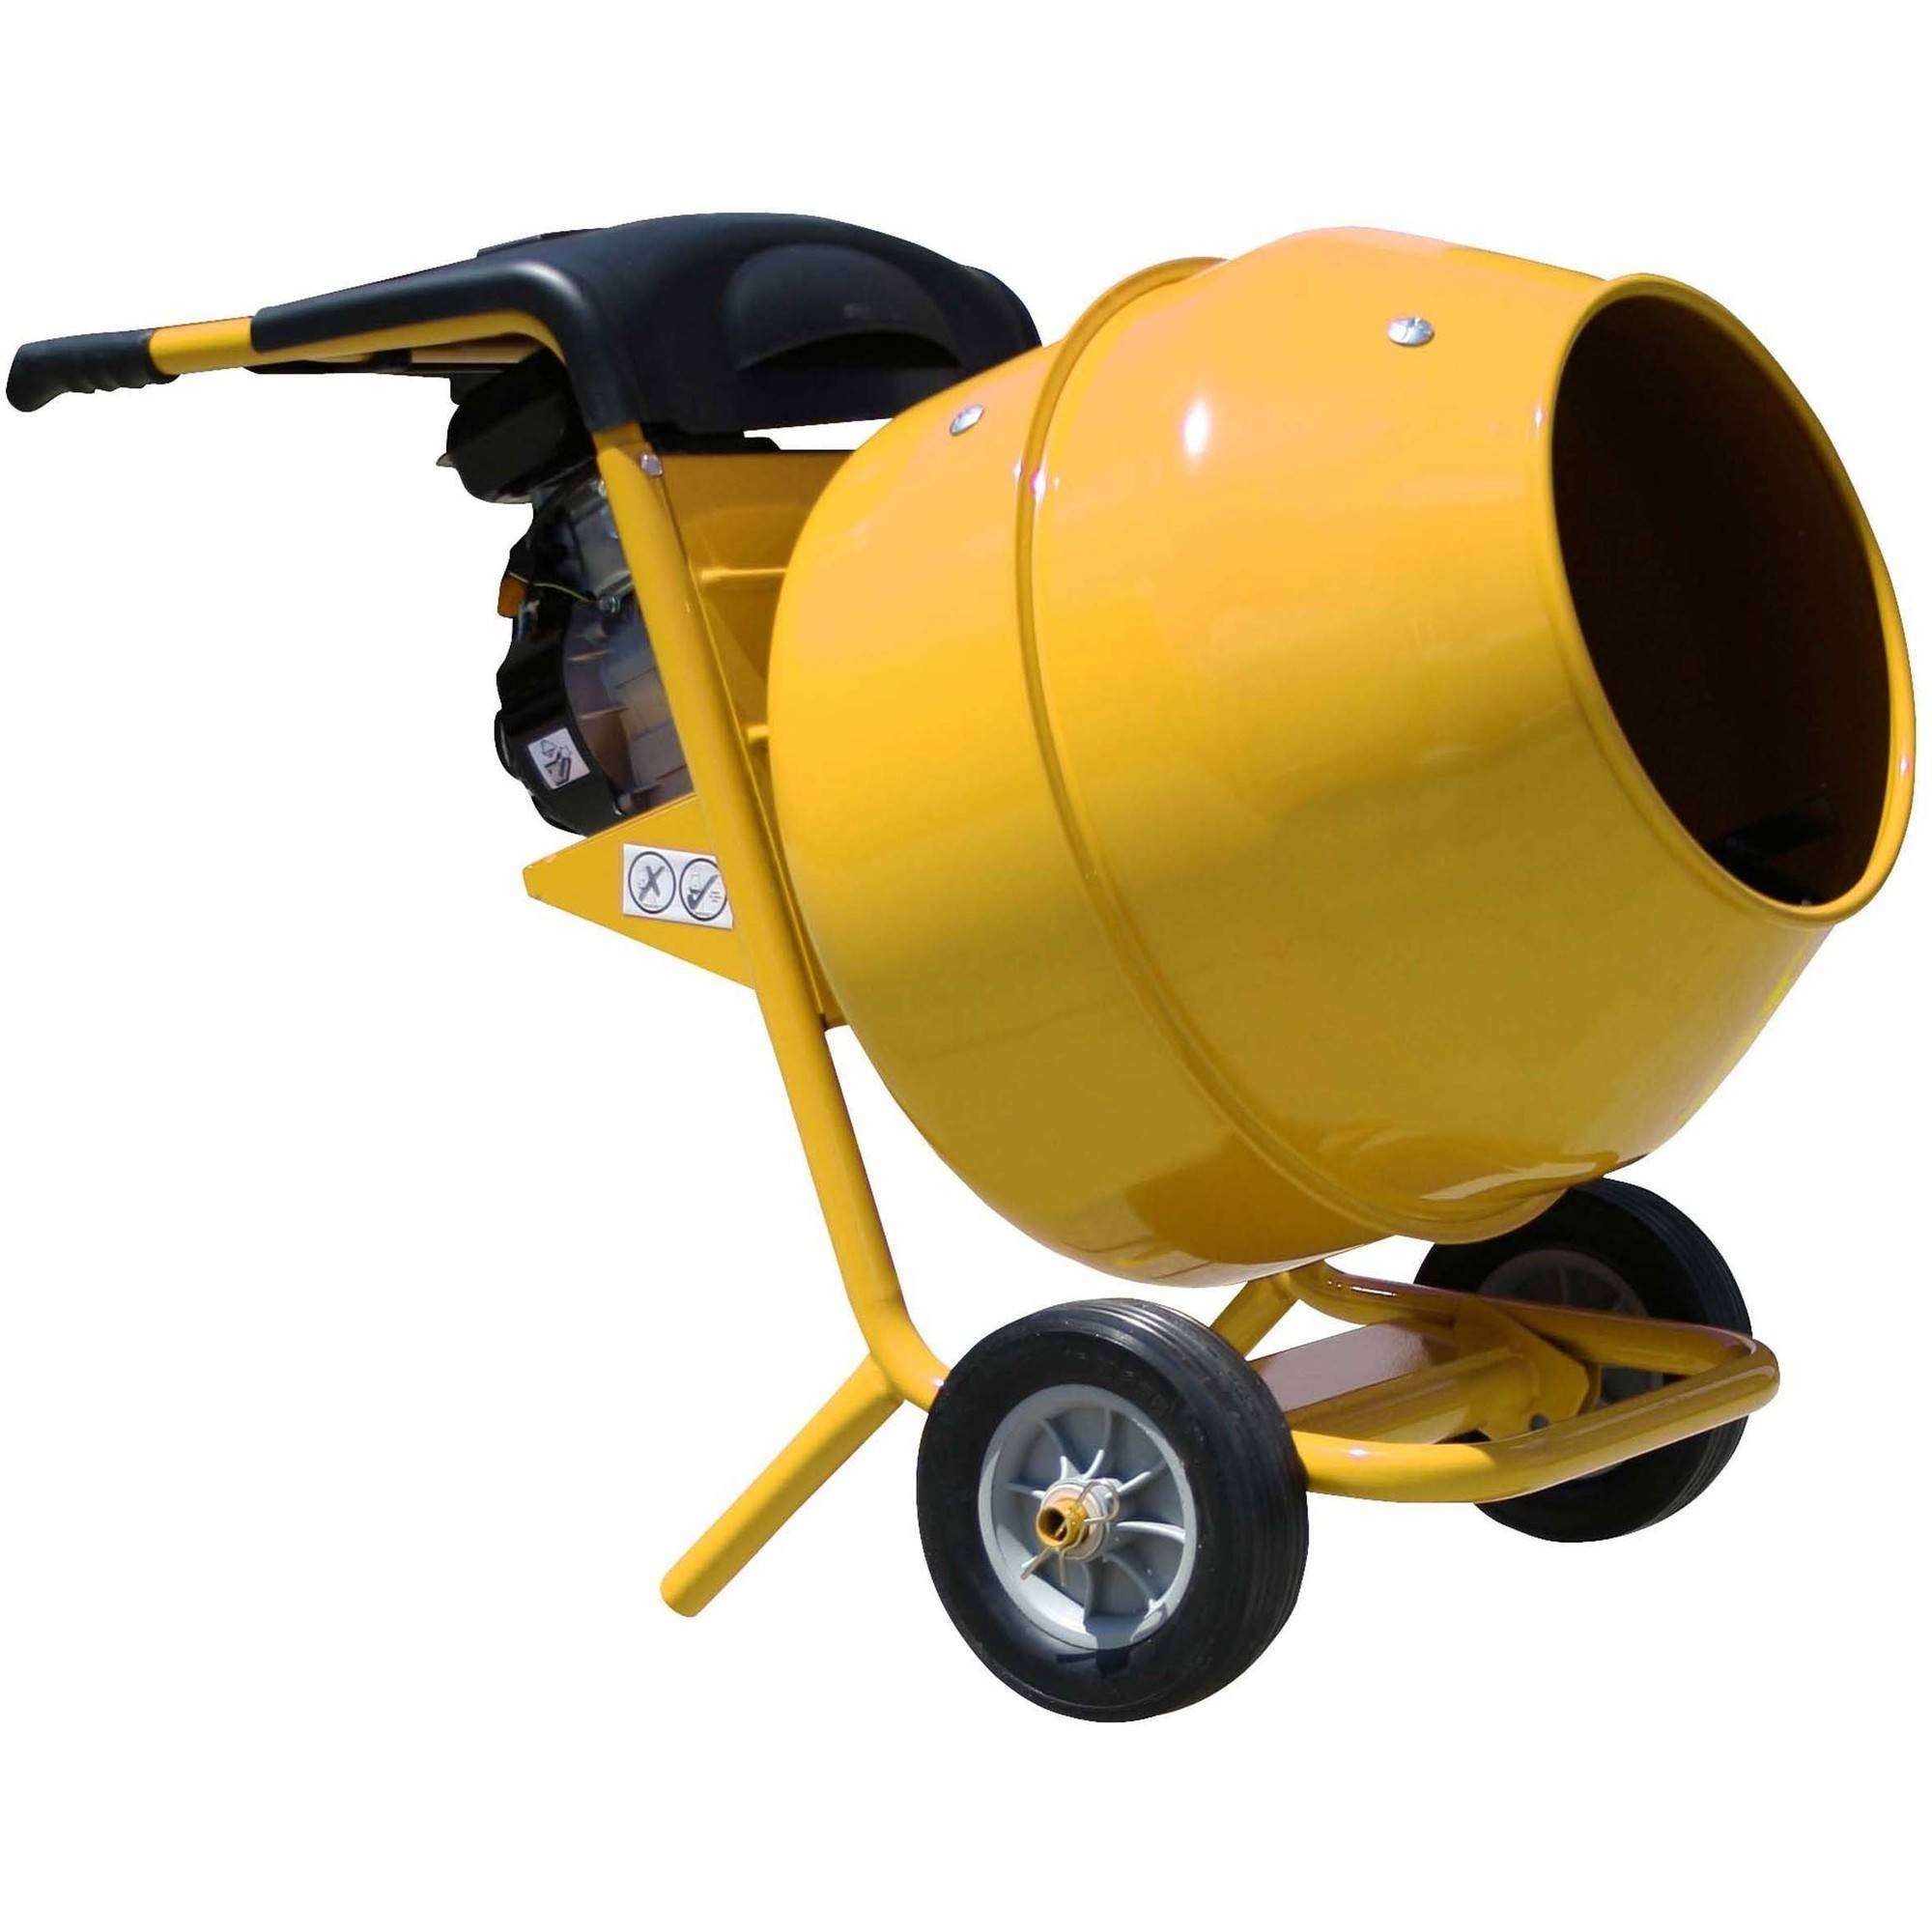 Pro-Series 5 Cubic Foot   2.5 HP Gasoline Cement Mixer by New Buffalo Corp.